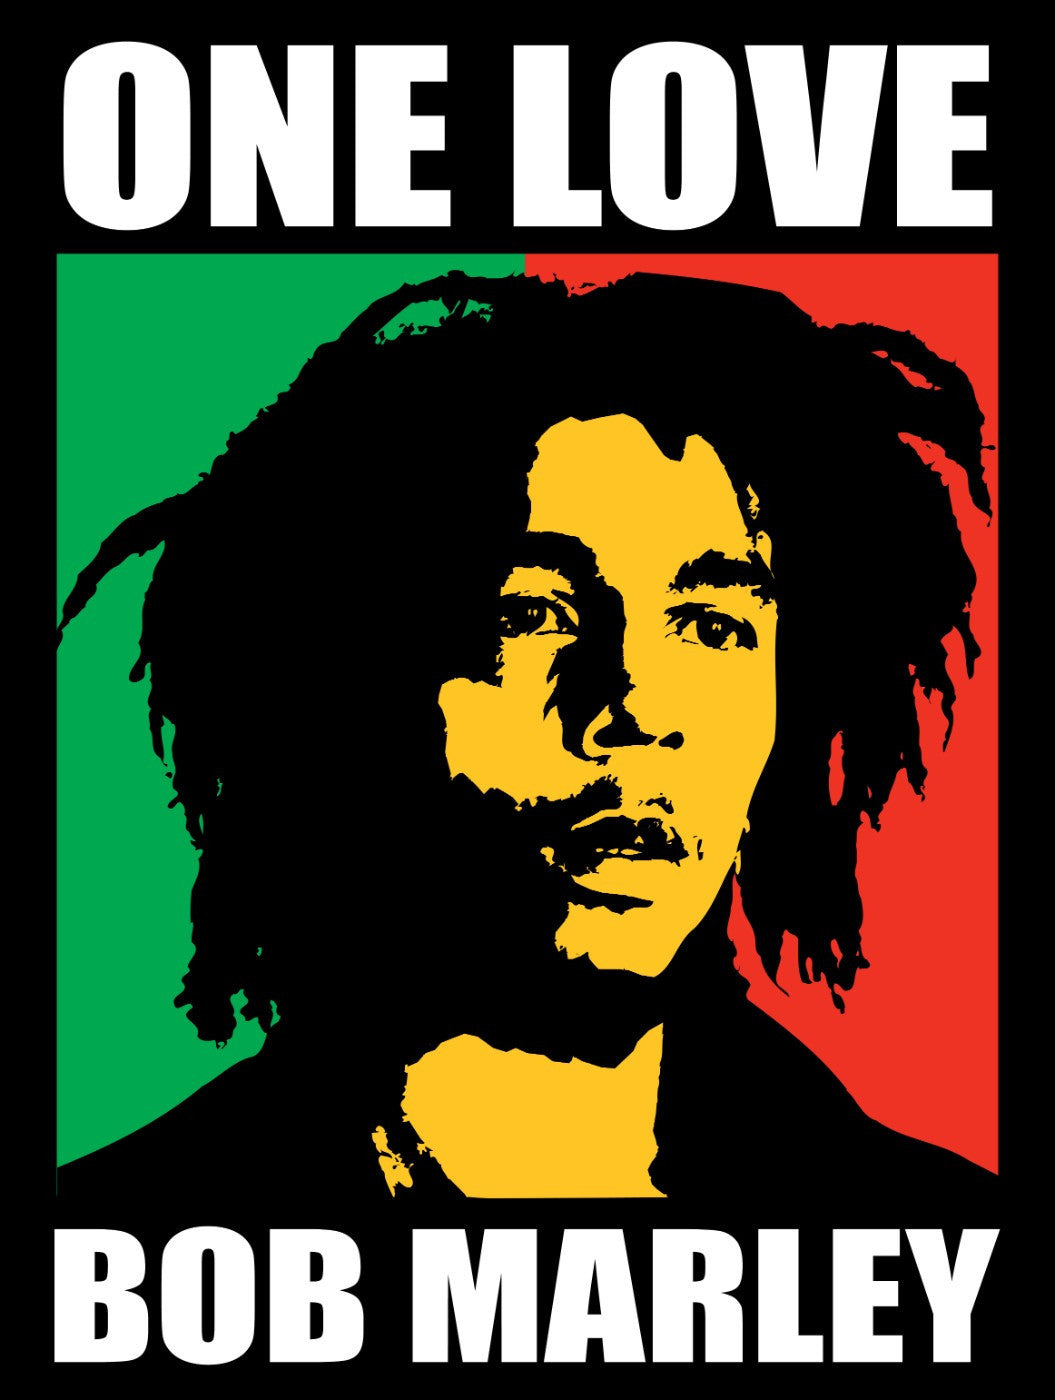 Musicians - Bob Marley - One Love - Graphic Art - Framed Prints by ...